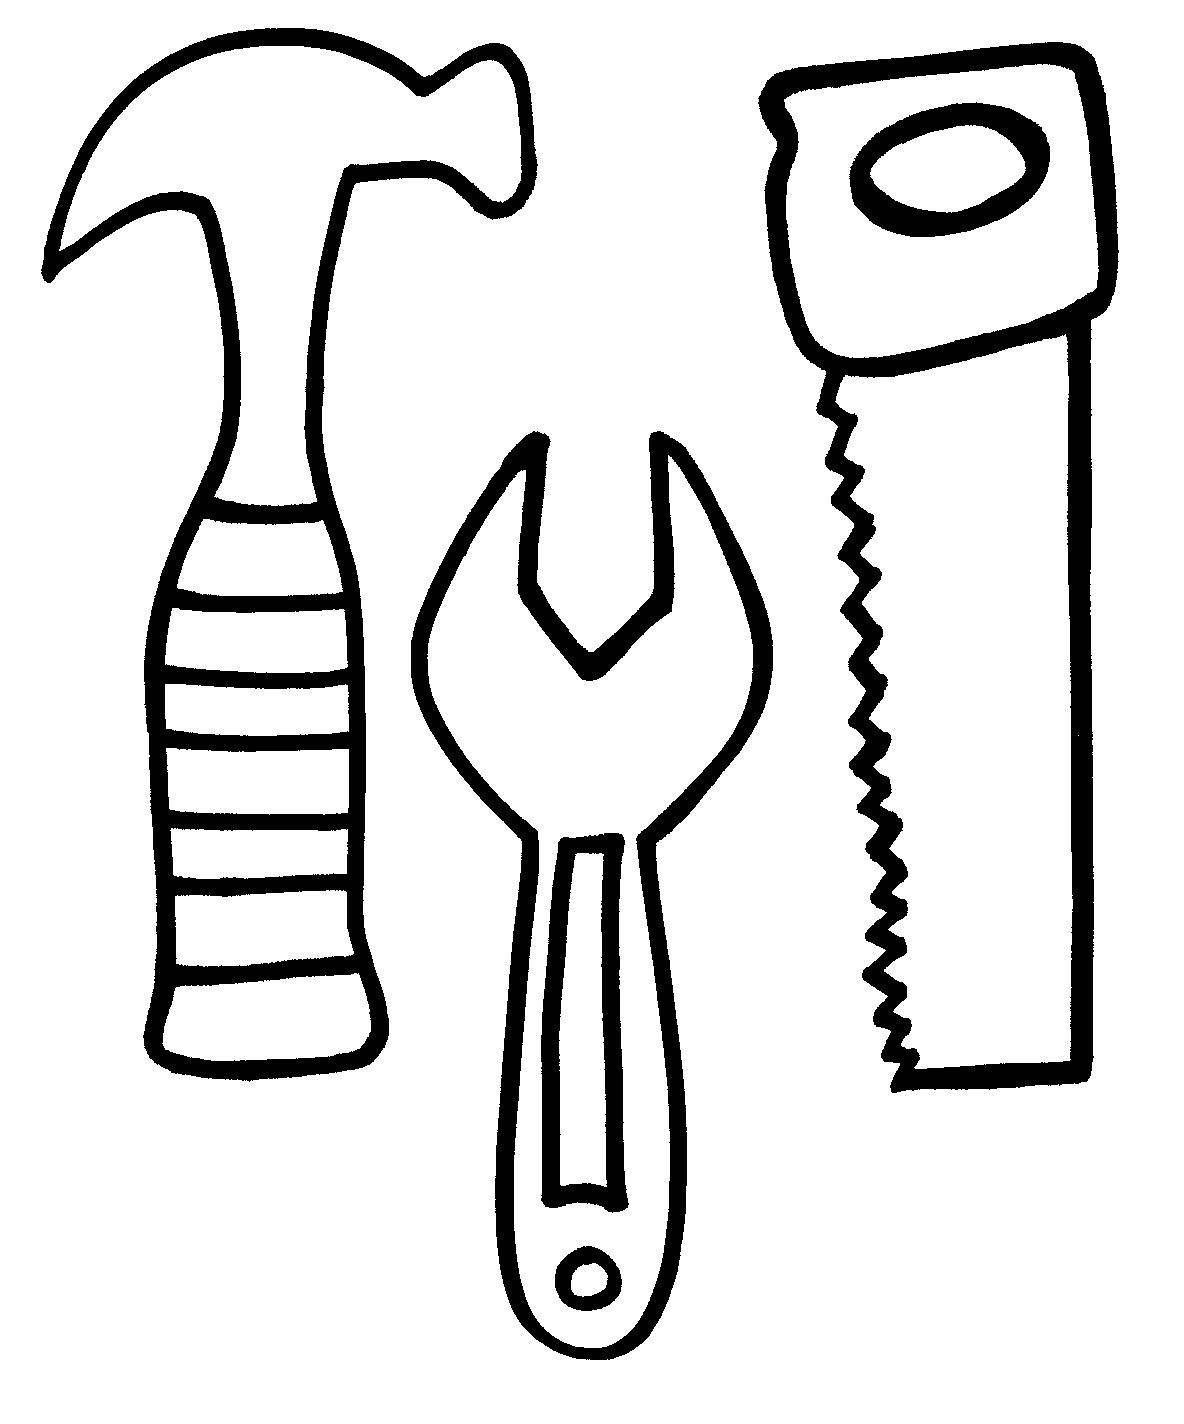 jpeg coloring pages - photo#11